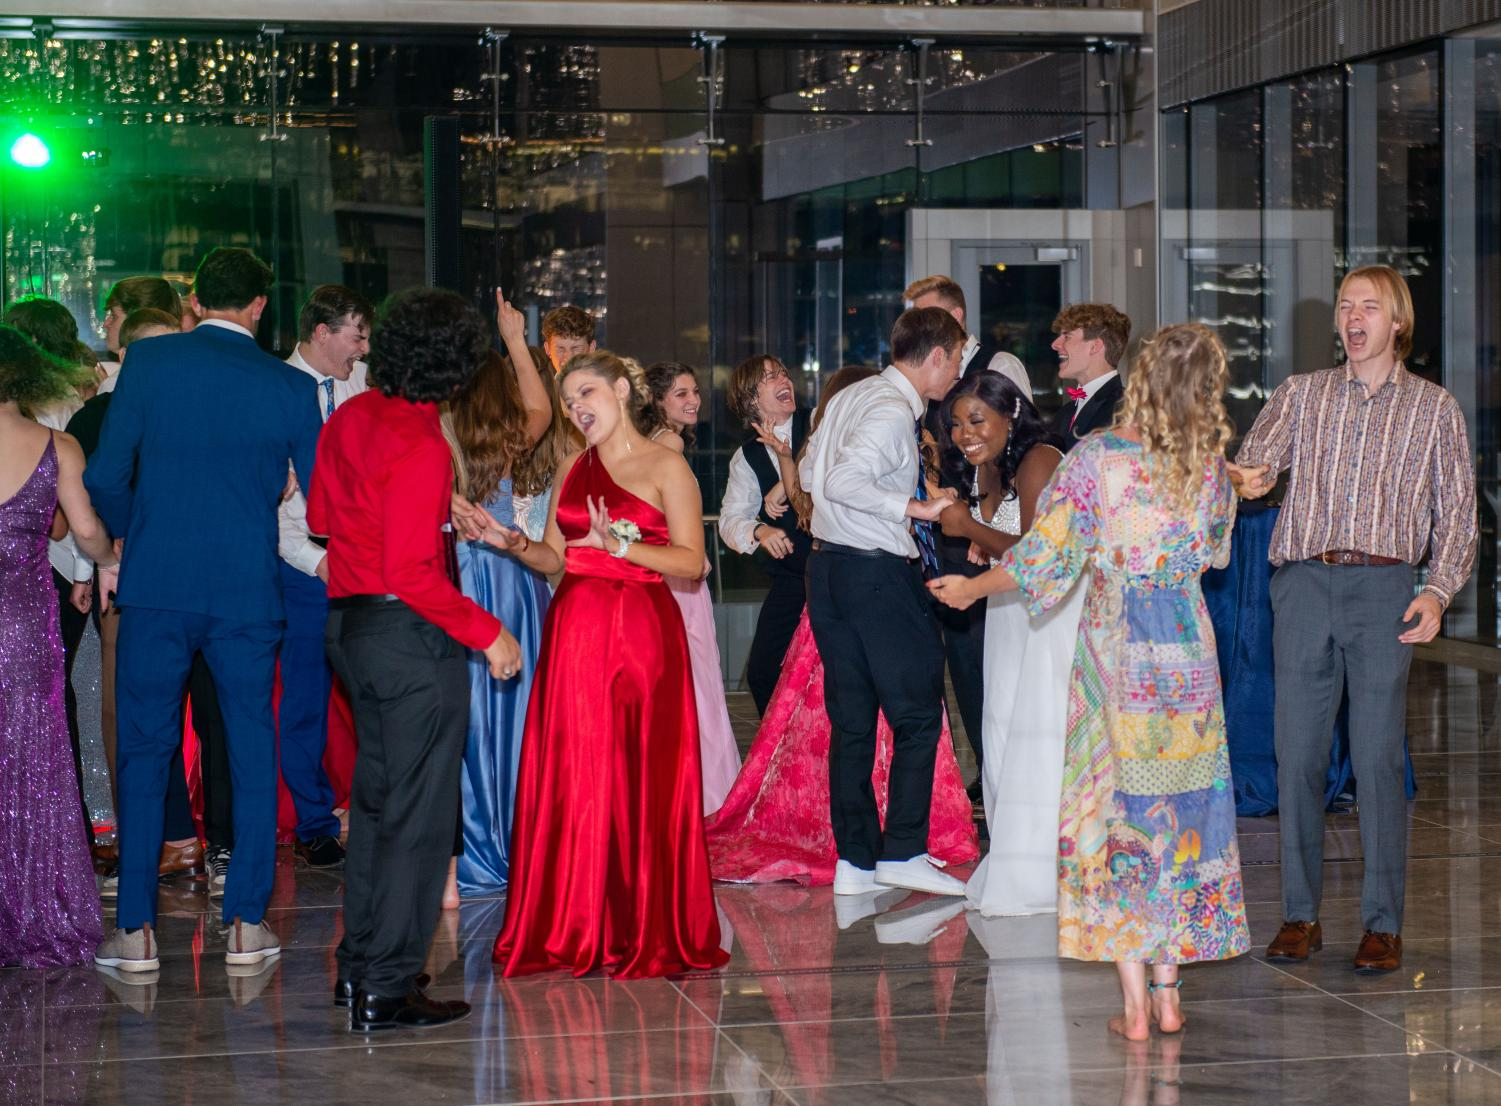 A+Night+At+The+Star%3A+Prom+2021